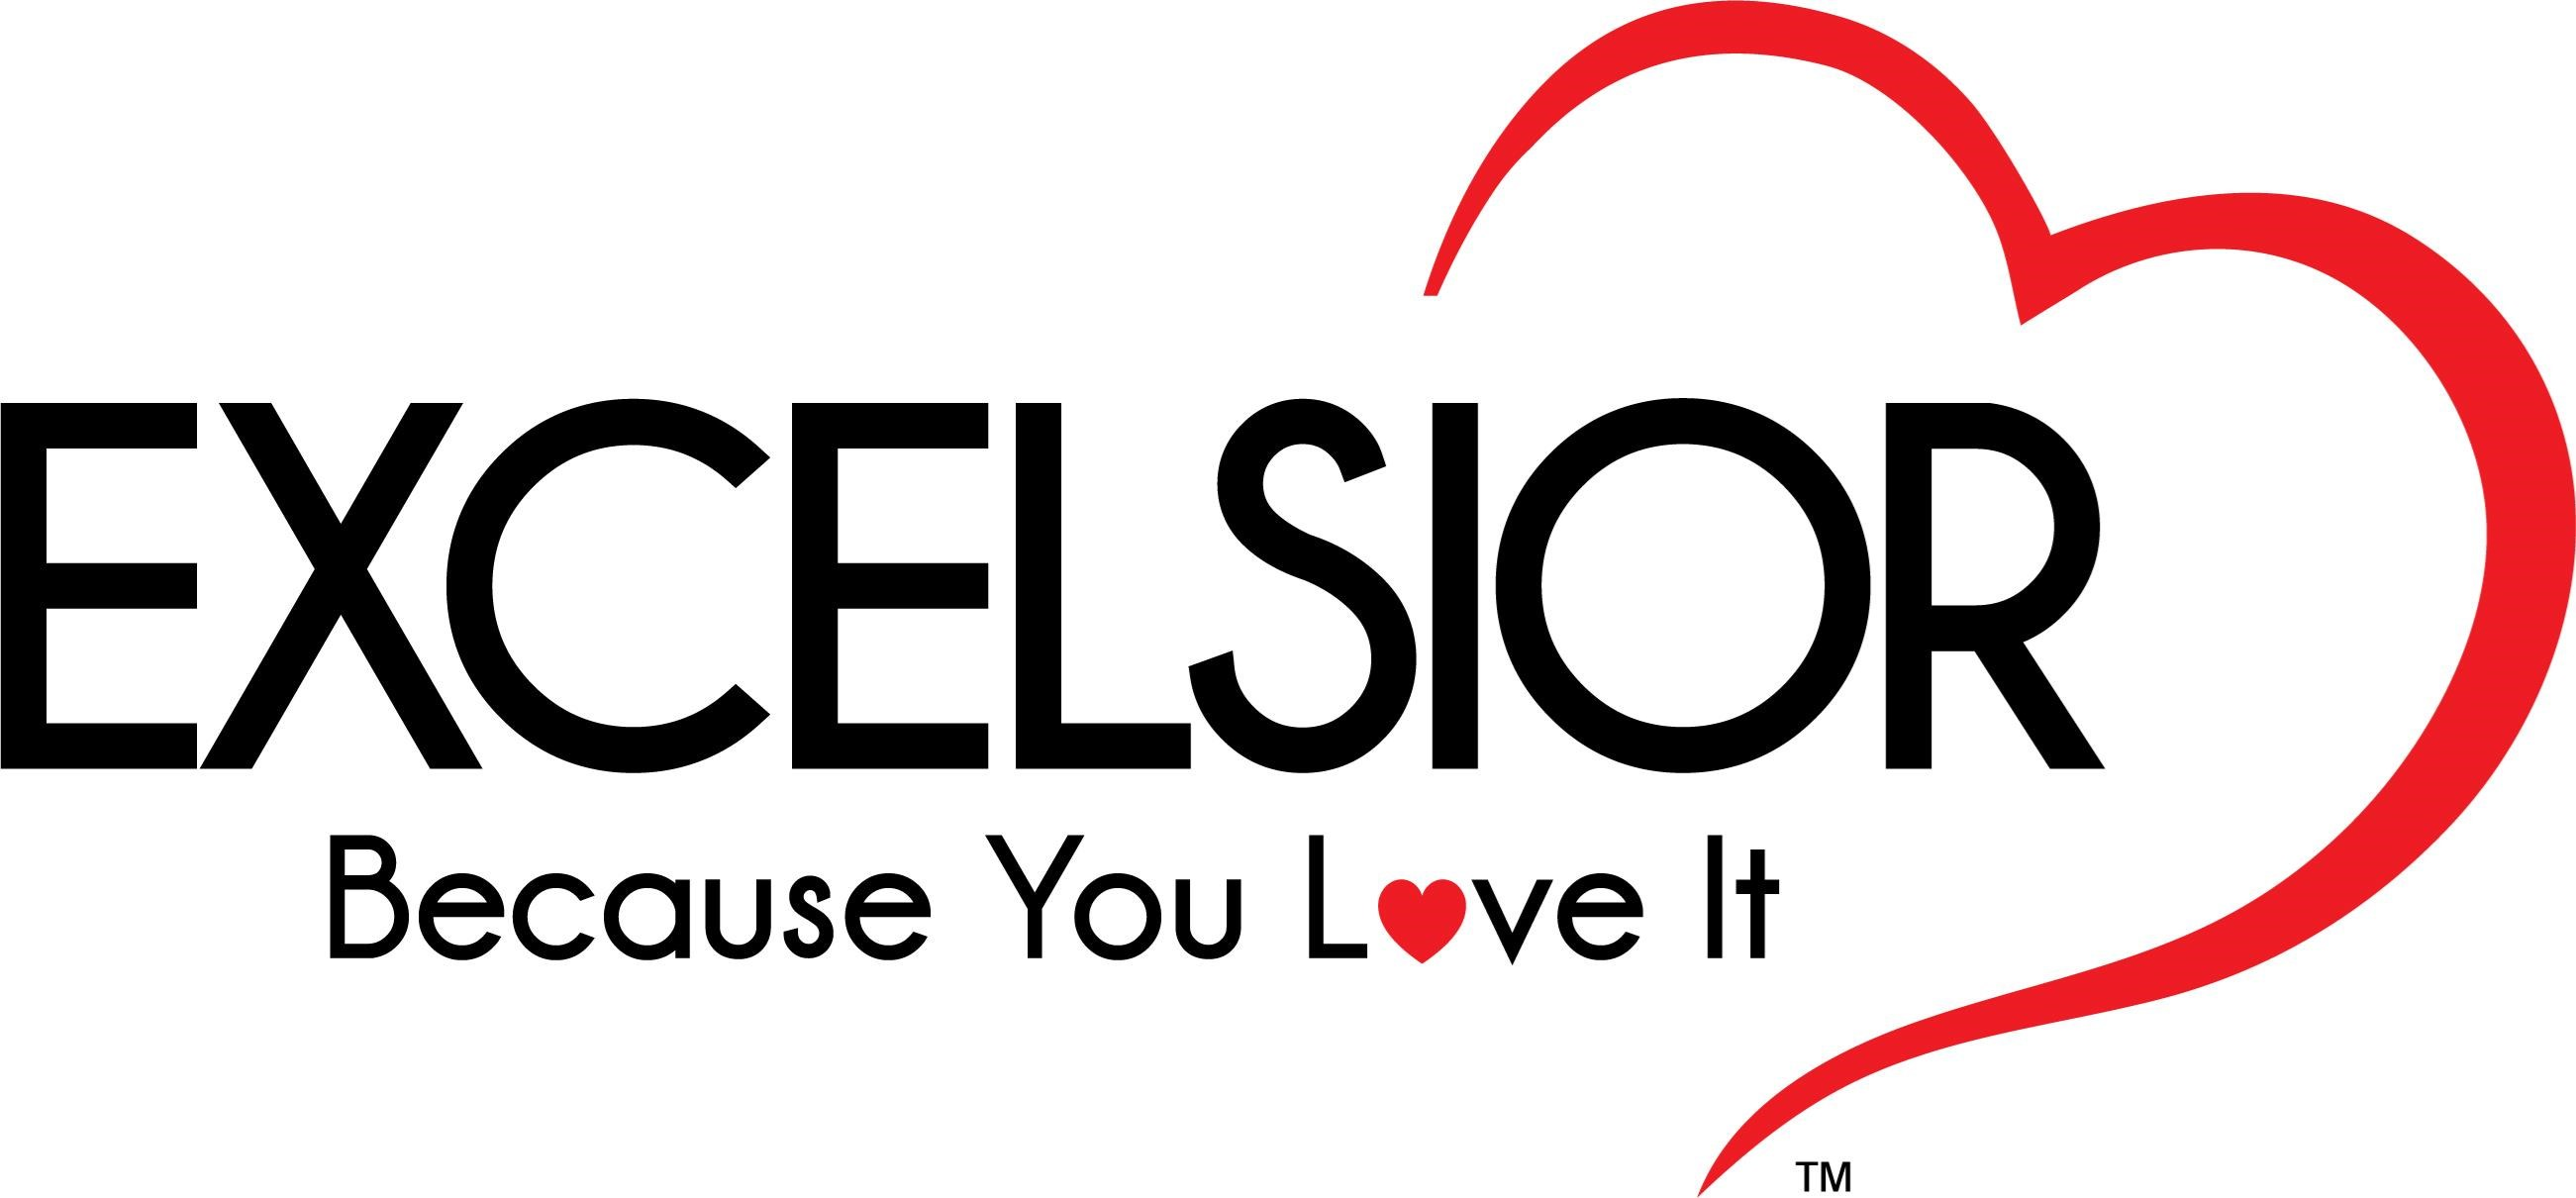 Stationary Furniture Stationary Furniture Protection $0-$300 by Excelsior at C. S. Wo & Sons Hawaii